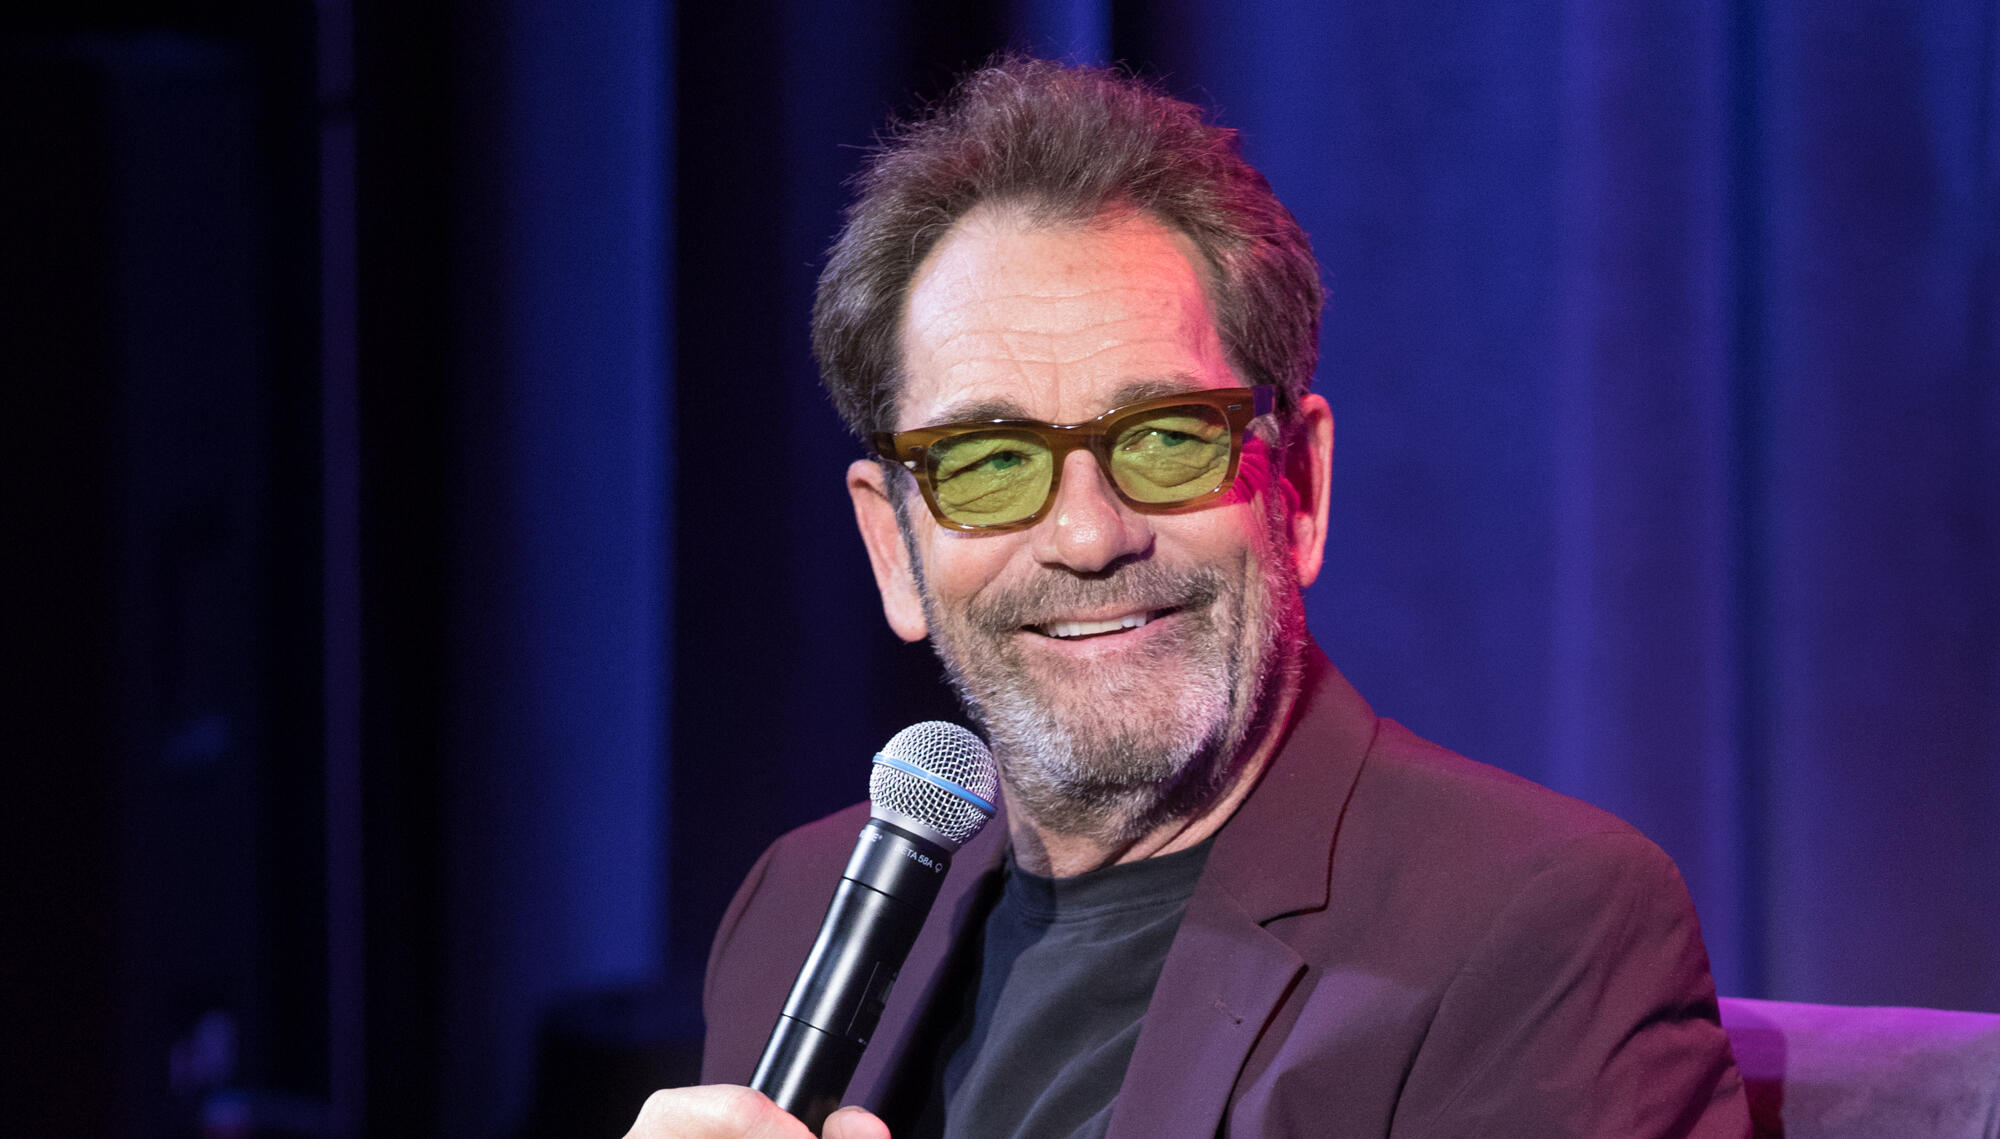 """Huey Lewis On Hearing Loss: """"There Are Lots Of People More Worse Off"""""""